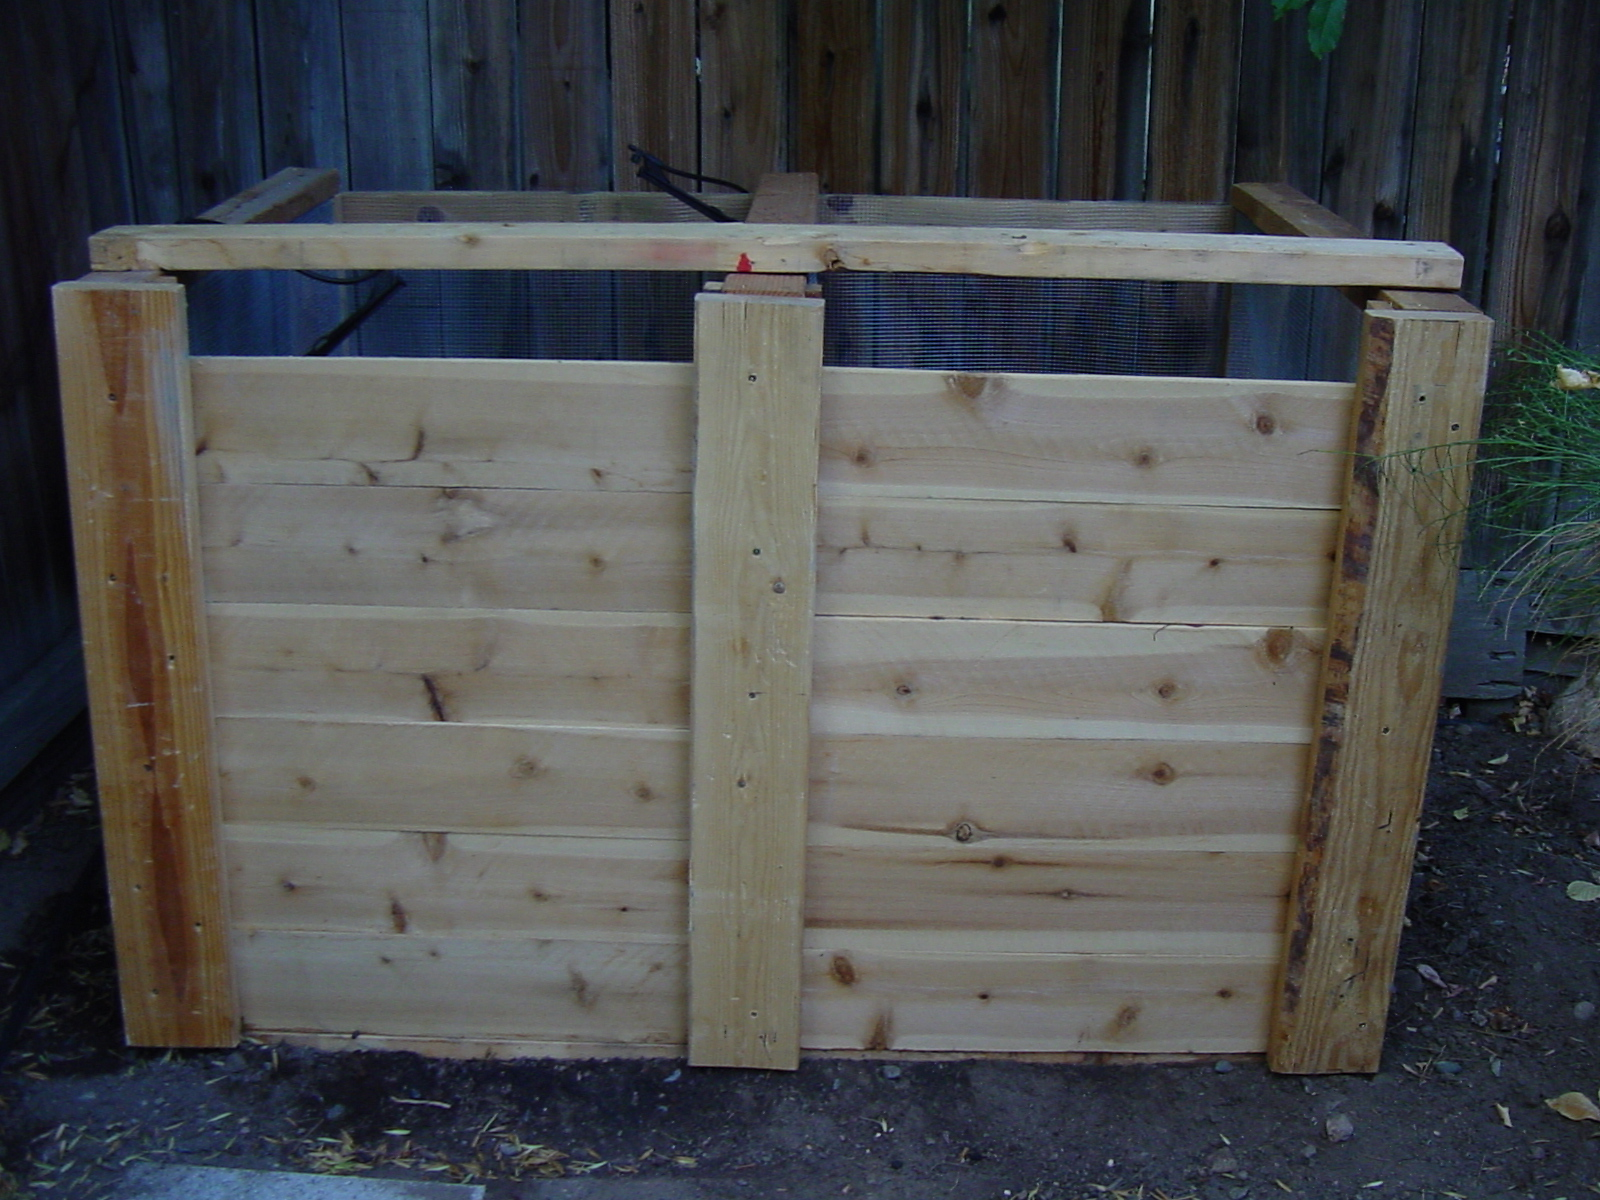 Diy Compost Bin Plans Composter Plans Plans Diy Free Download Make An Easel